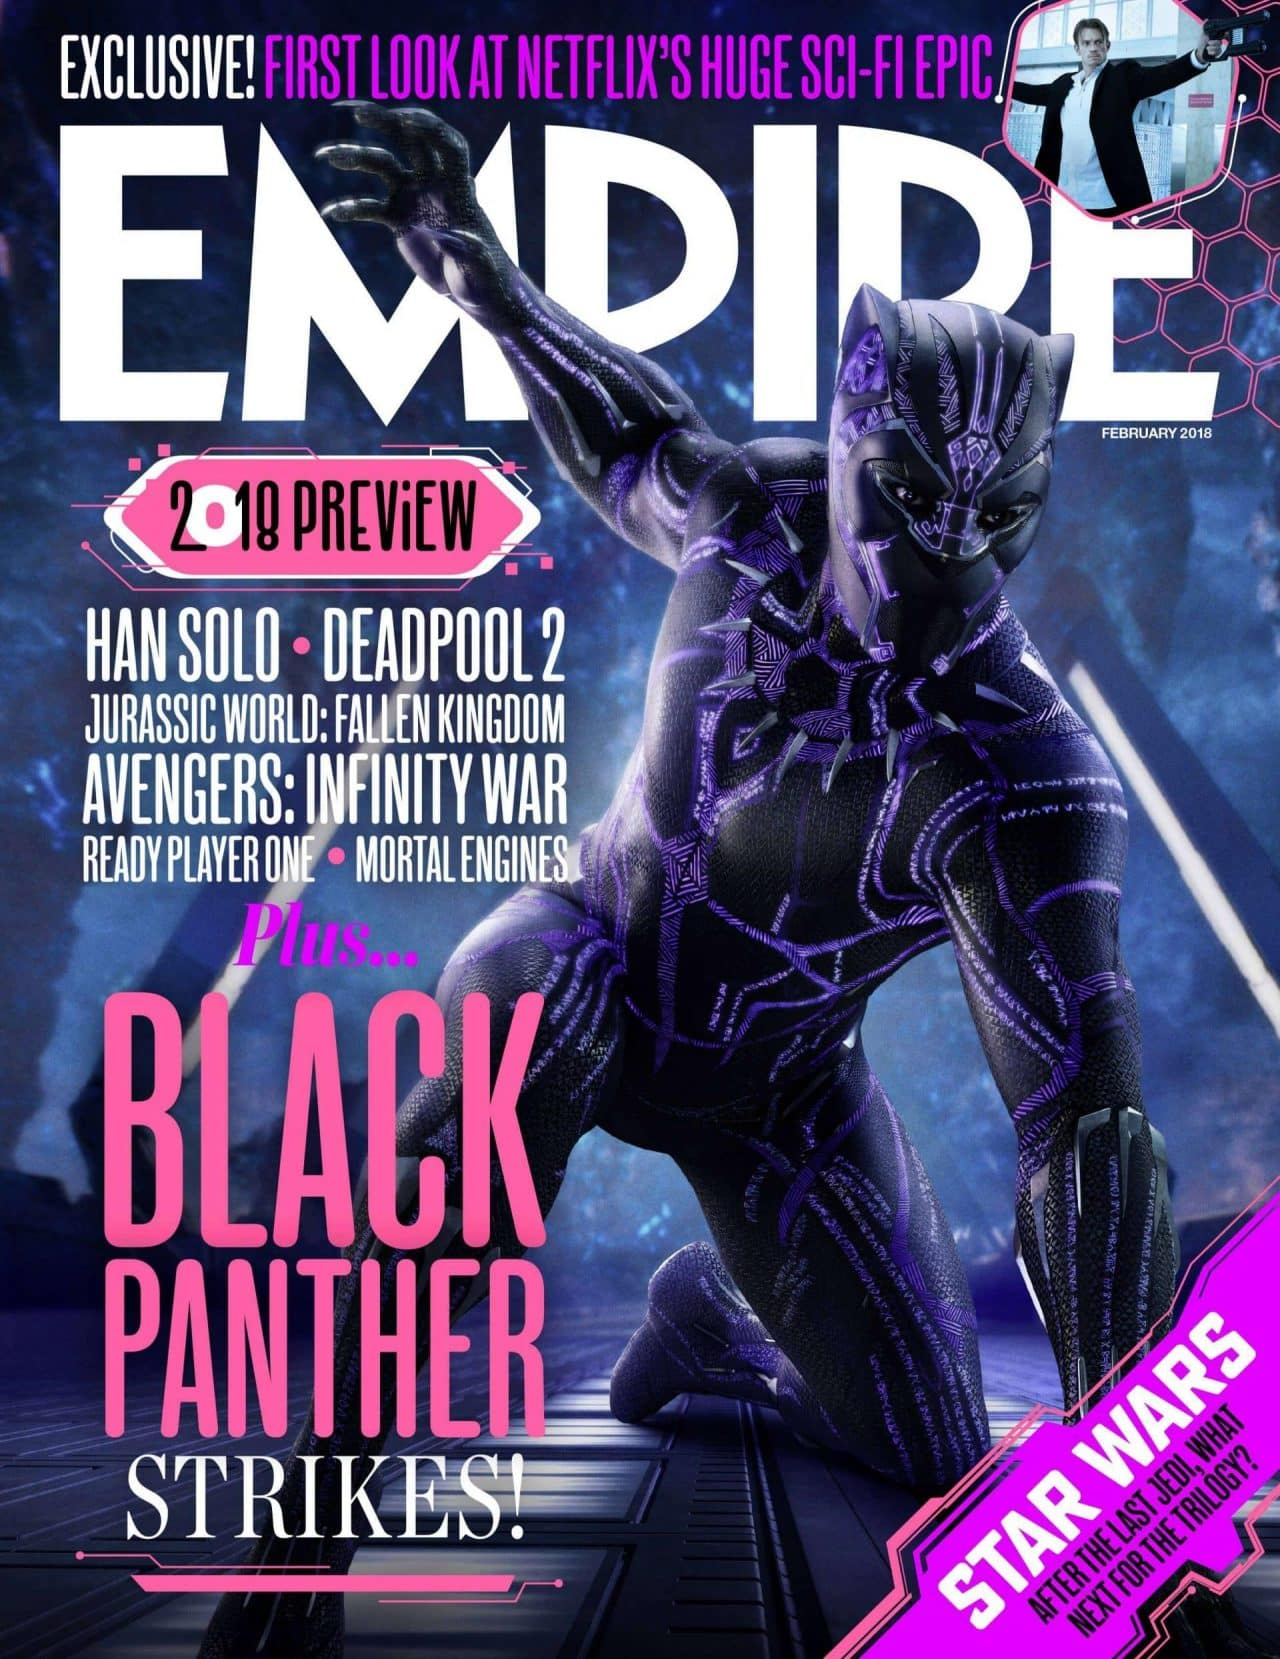 black panther, empire, cinematographe